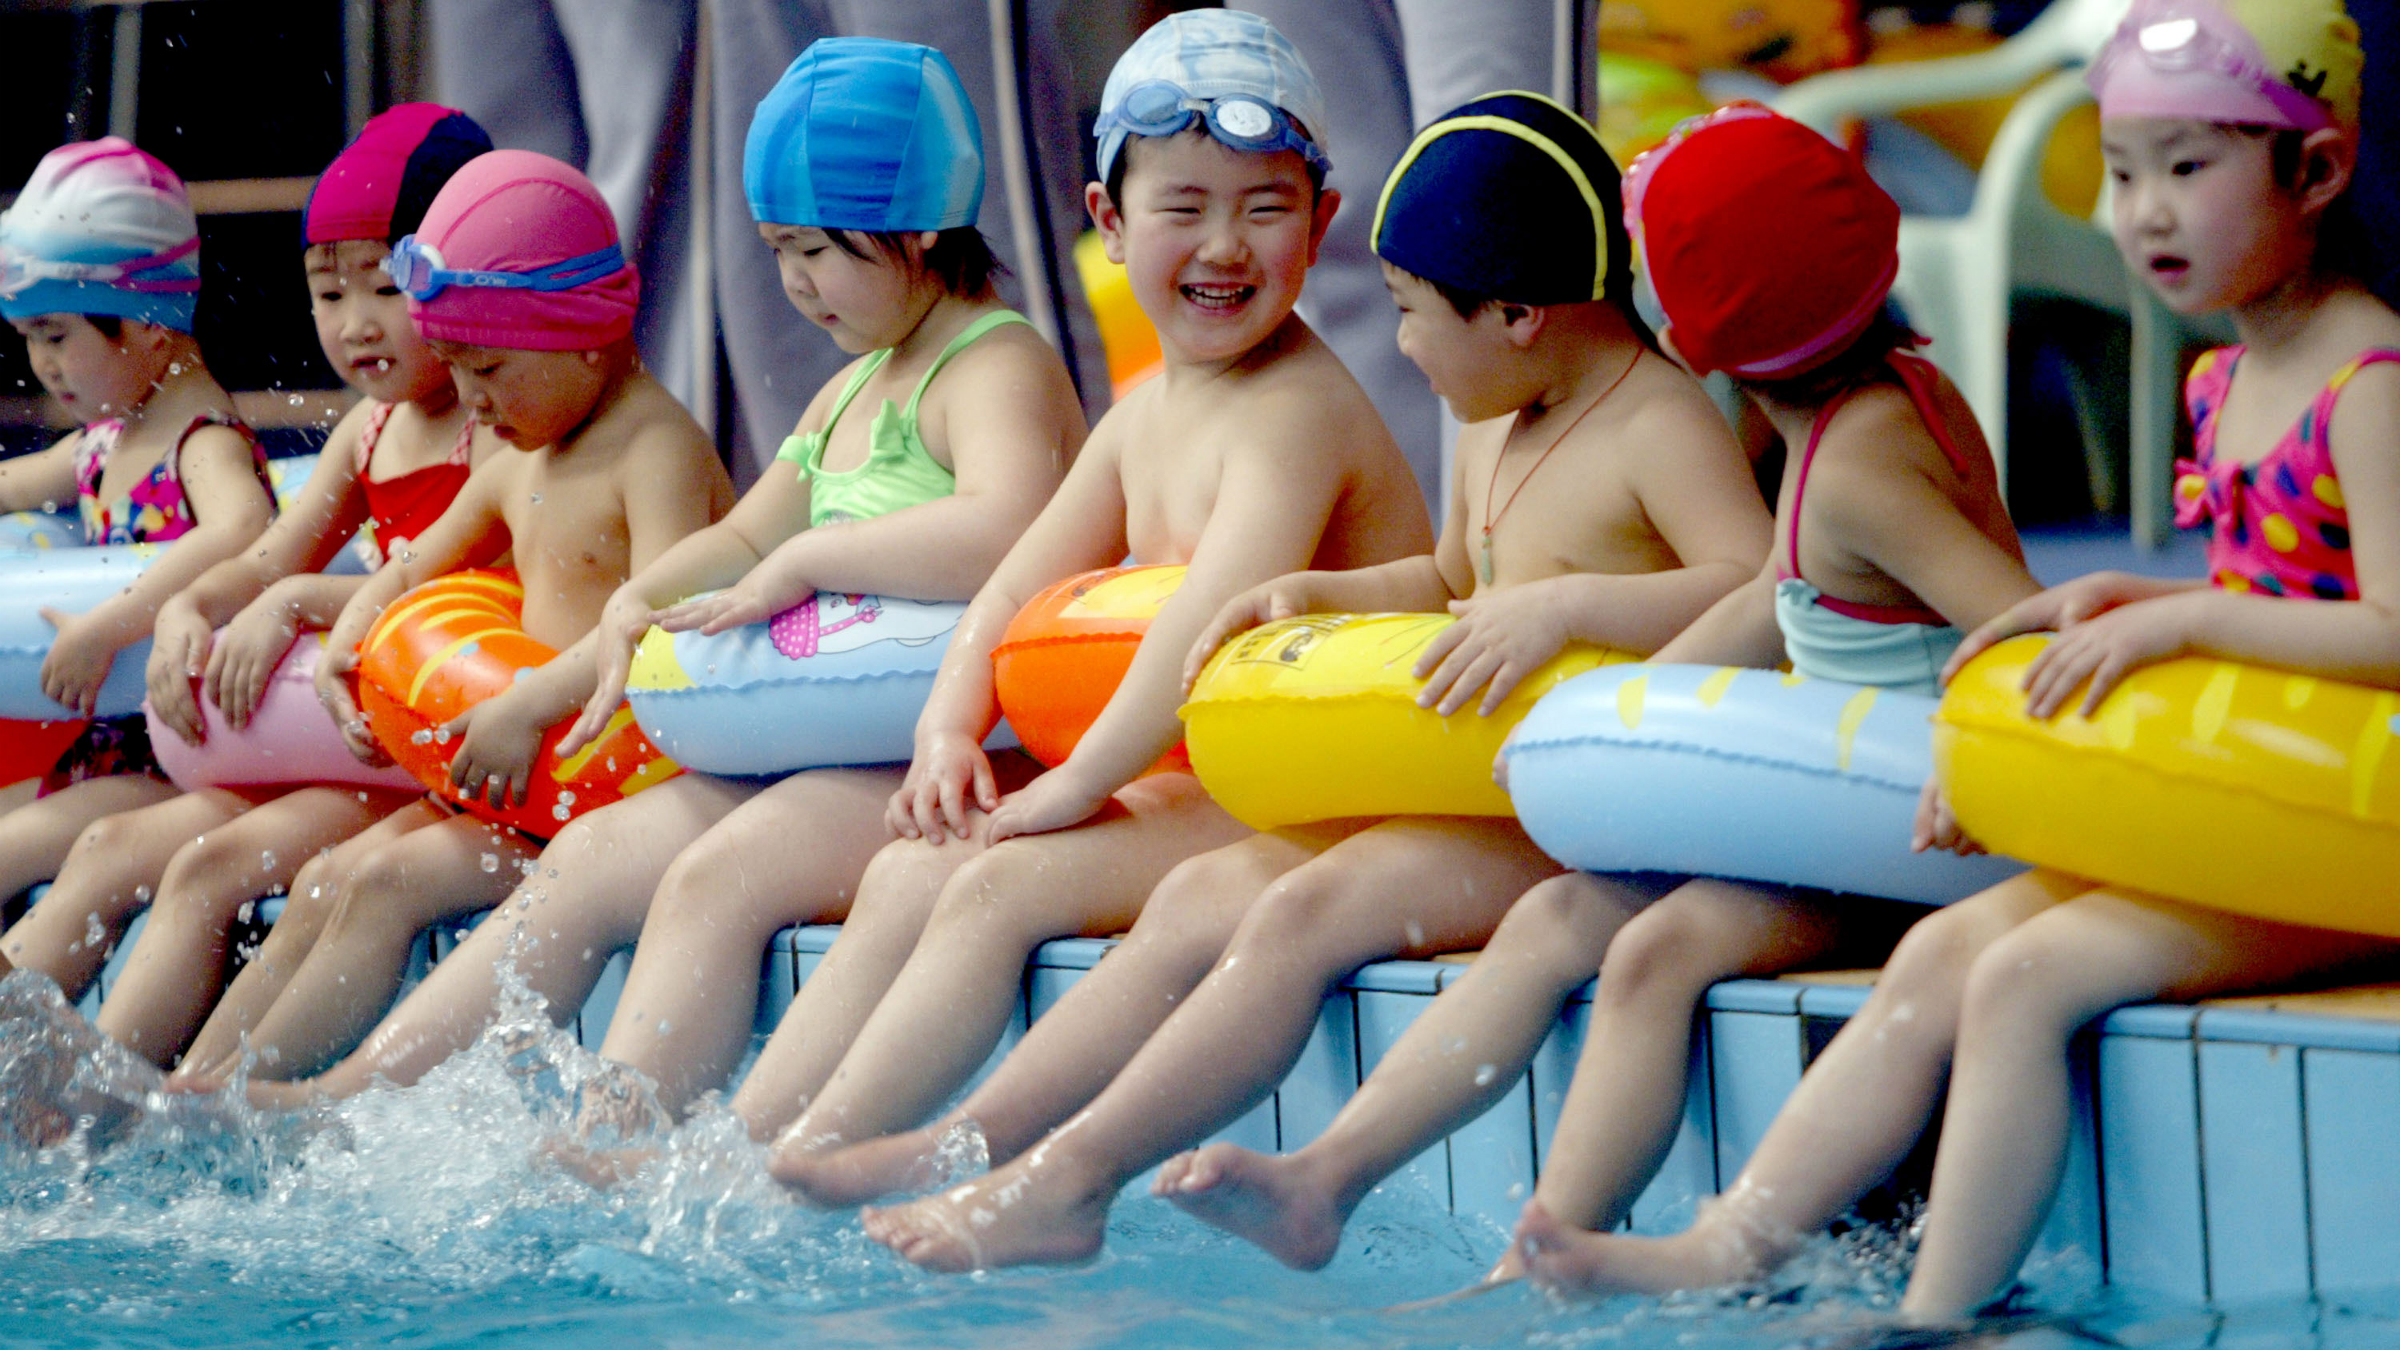 In this photo released by China's Xinhua News Agency, children sit along a pool as they take part in a swimming lesson, at the Natatorium of Shenyang, capital of northeast China's Liaoning Province, Monday, April 16, 2007. Youngsters from three to six are offered free swimming lessons at the natatorium. (AP Photo/Xinhua, Zhang Wenkui